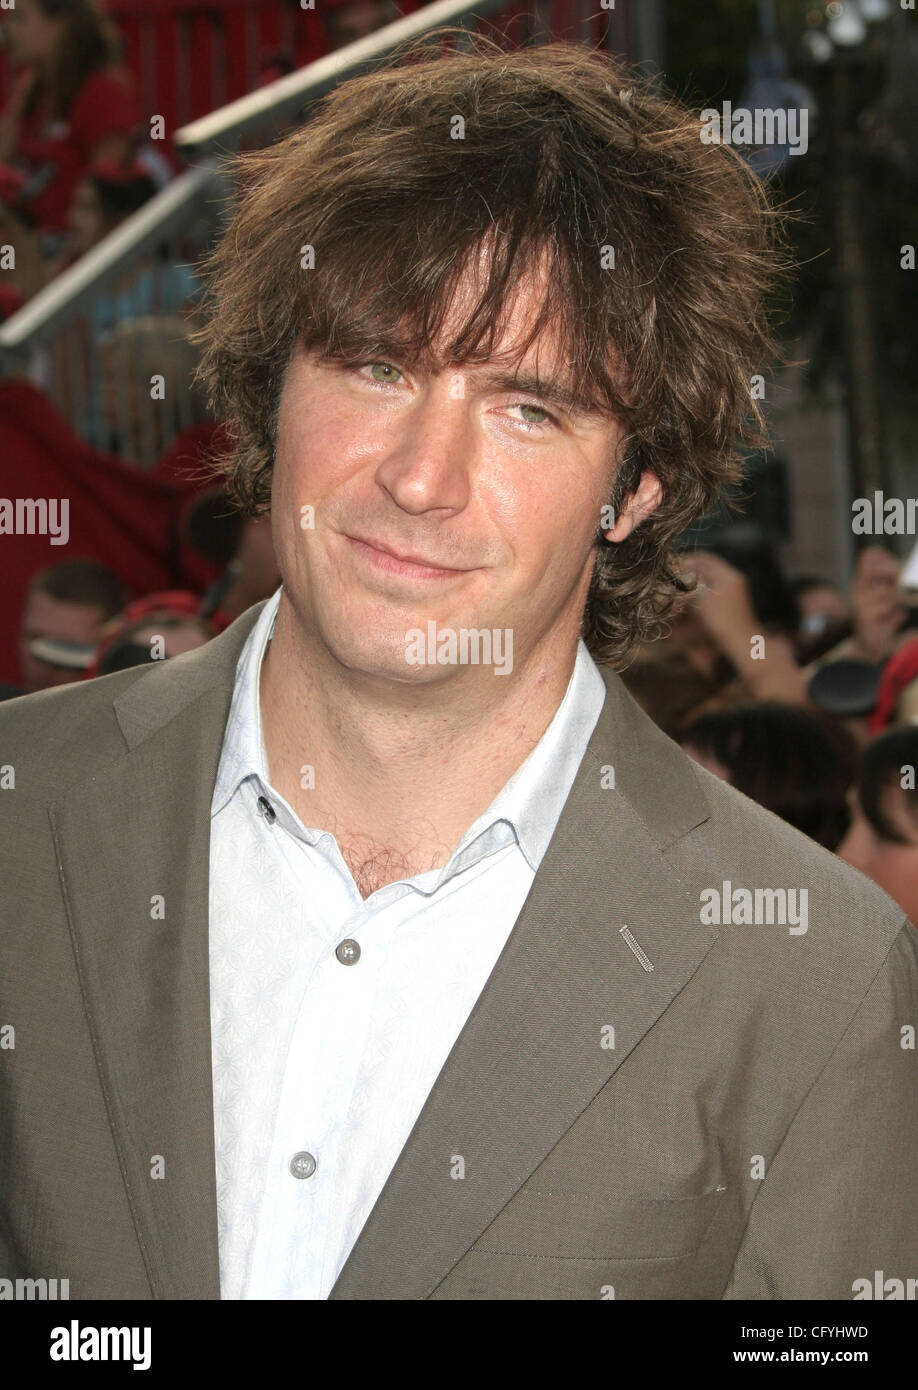 May 19, 2007; Anaheim, California, USA;  Actor JACK DAVENPORT at the 'Pirates of the Caribbean: At Worlds End' - Stock Image